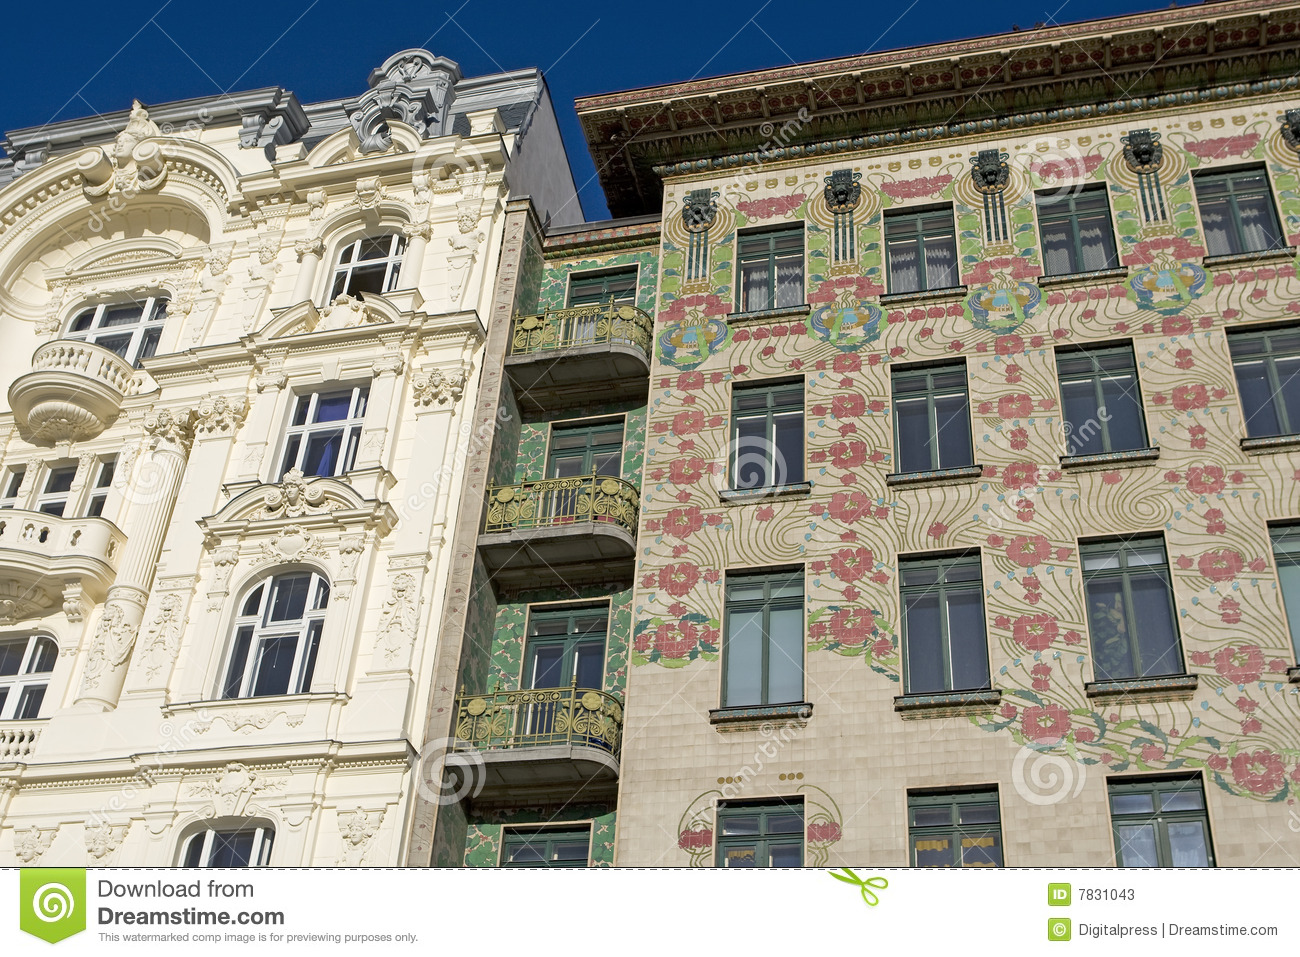 Viennese architecture art nouveau otto wagner stock image for Art architectural